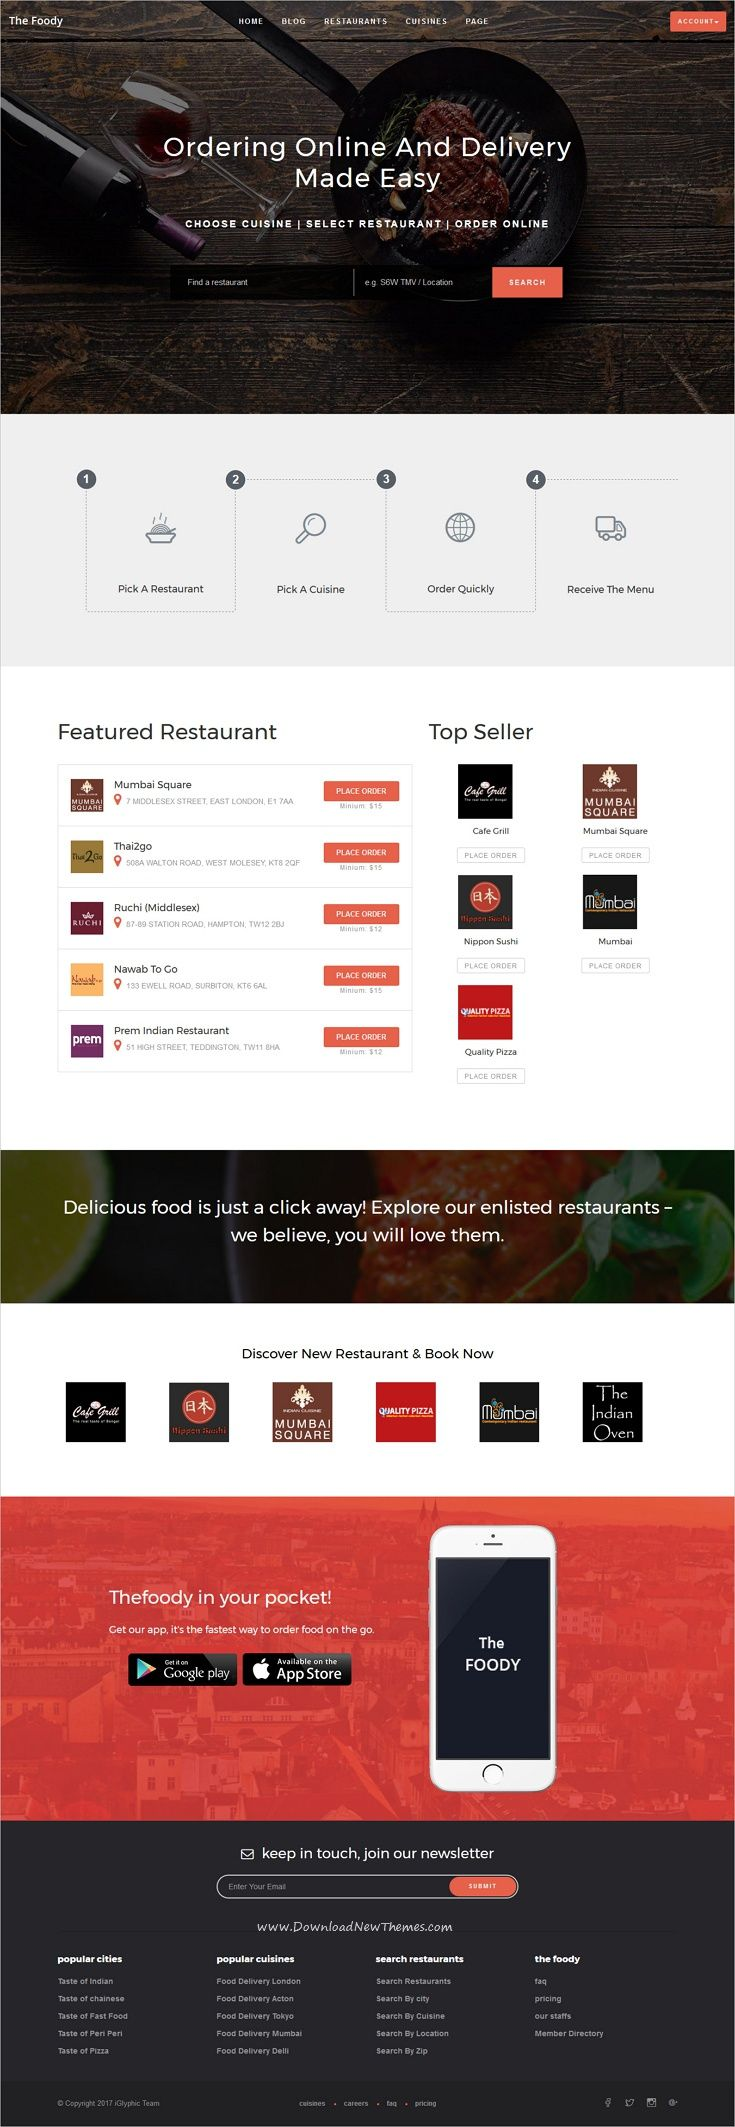 TheFoody is a wonderful responsive #WordPress Template for #restaurant, #food ordering & #delivery system websites like FoodPanda, JustEat, Zomato, Grubhub, Eat24Hours, delivery.com, DoorDash etc download now➩ https://themeforest.net/item/thefoody-multivendor-multiple-restaurant-wordpress-theme/19256256?ref=Datasata